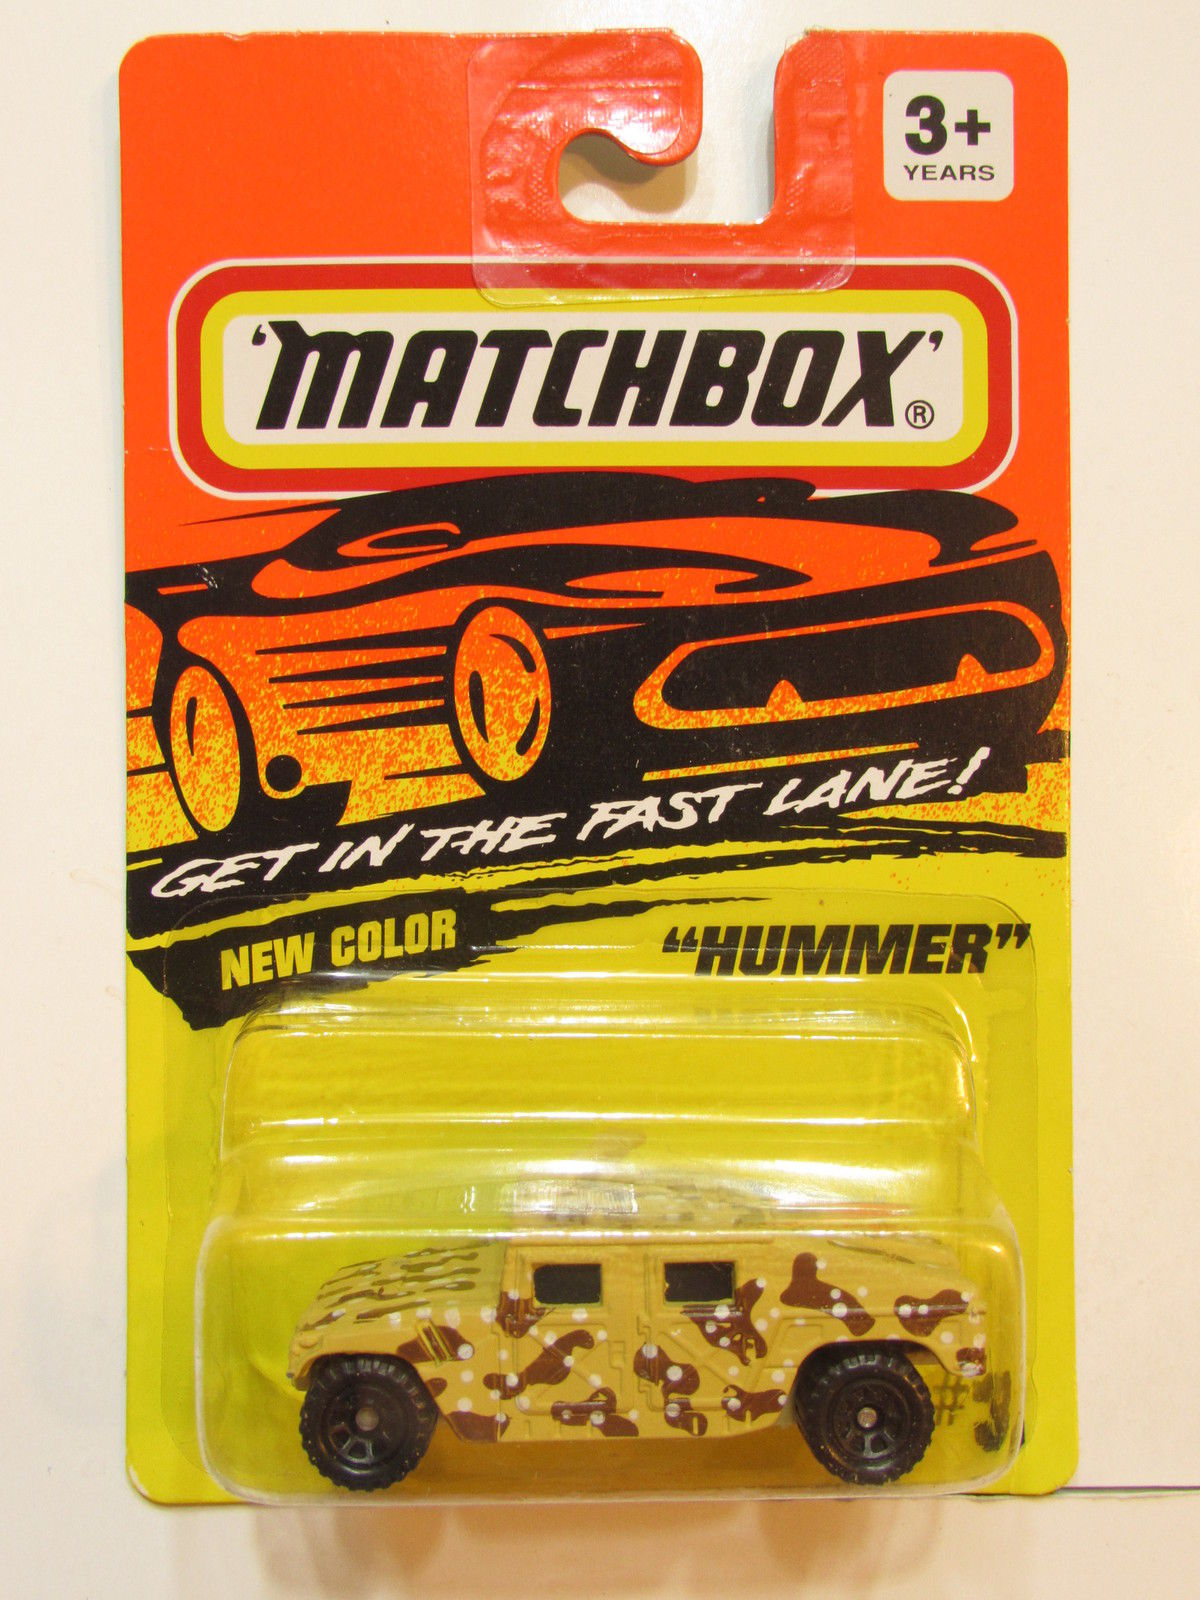 MATCHBOX 1994 NEW COLOR - HUMMER